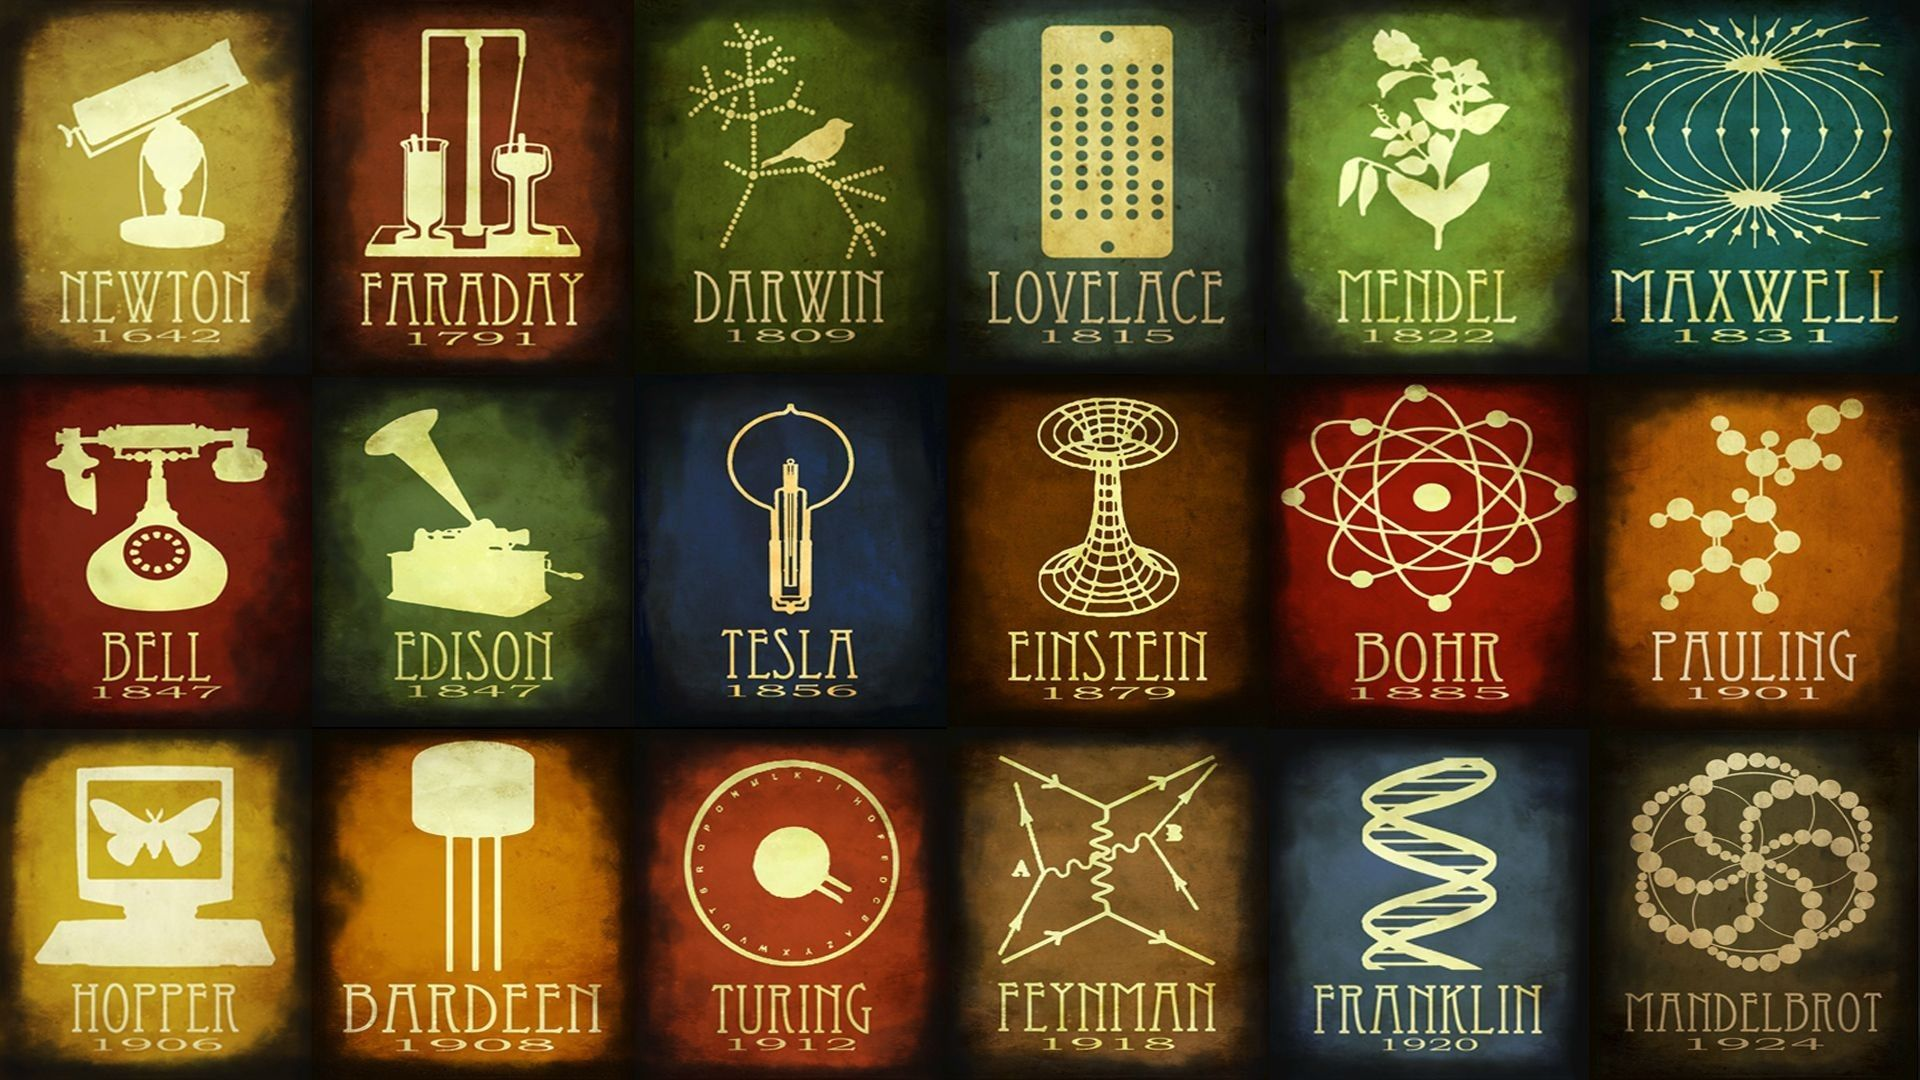 Download Physics Wallpaper 1920x1080 Windows 7 Science Background Fun Science Physics